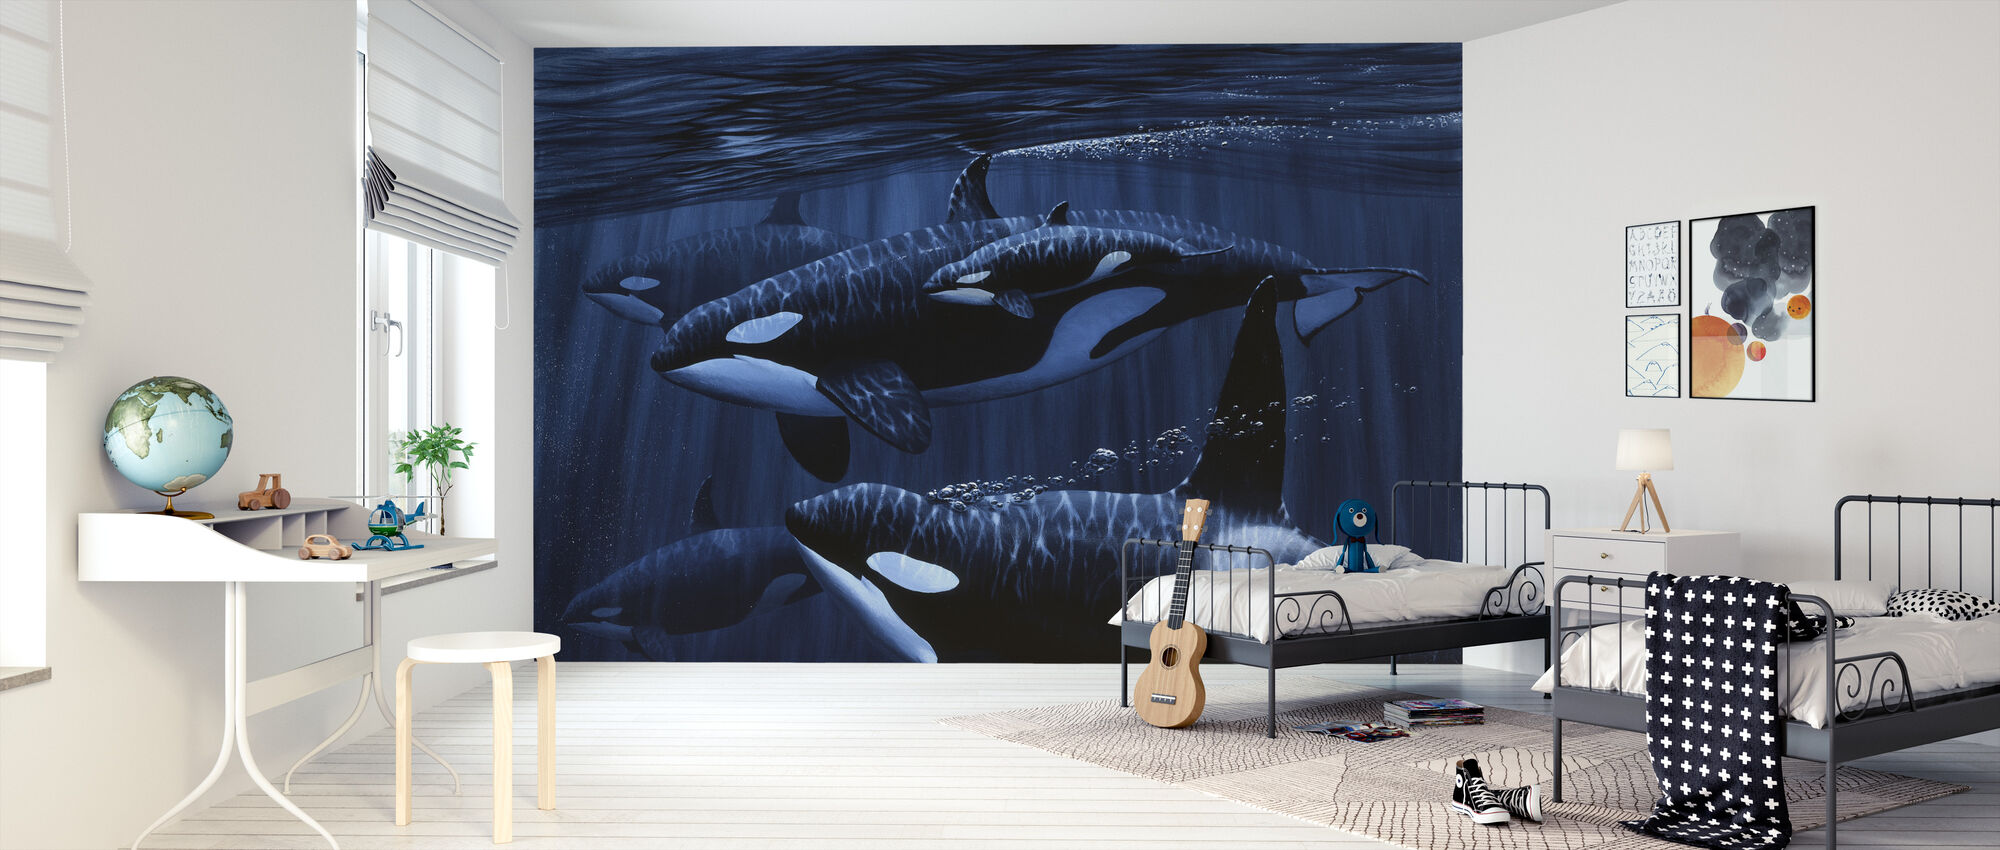 Orcas with Baby - Wallpaper - Kids Room